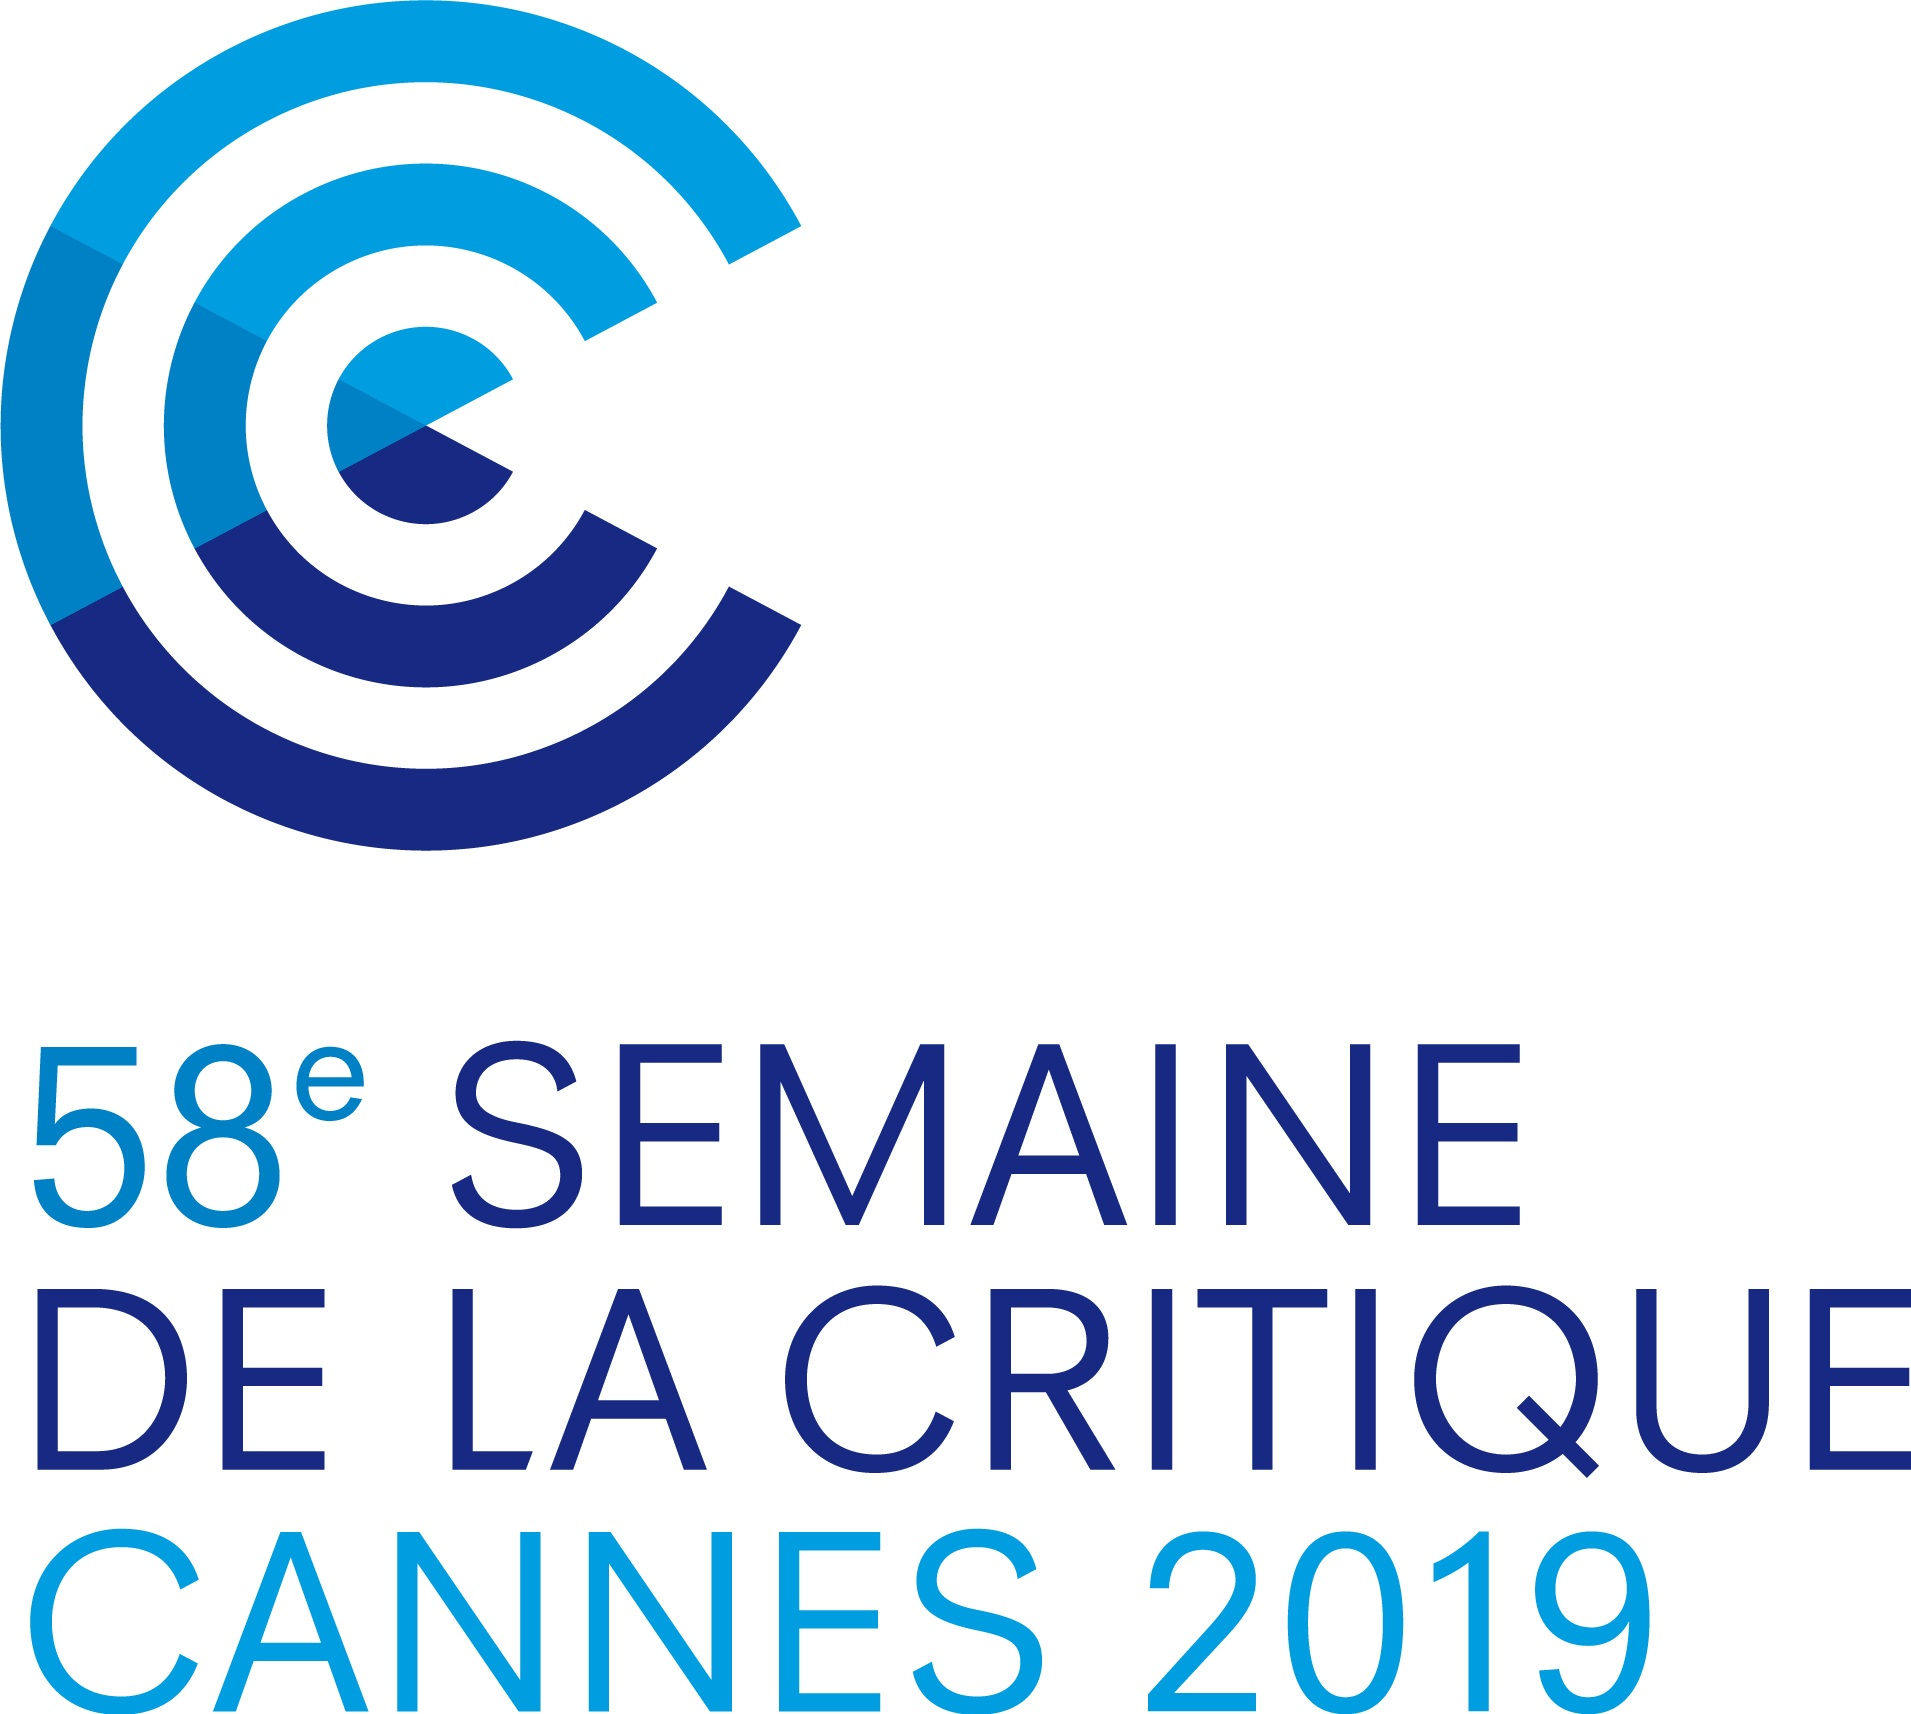 PLEASE SPEAK CONTINUOUSLY AND DESCRIBE YOUR EXPERIENCES AS THEY COME TO YOU Will Have Its World Premiere at the 58th Semaine de la Critique - Cannes 2019.